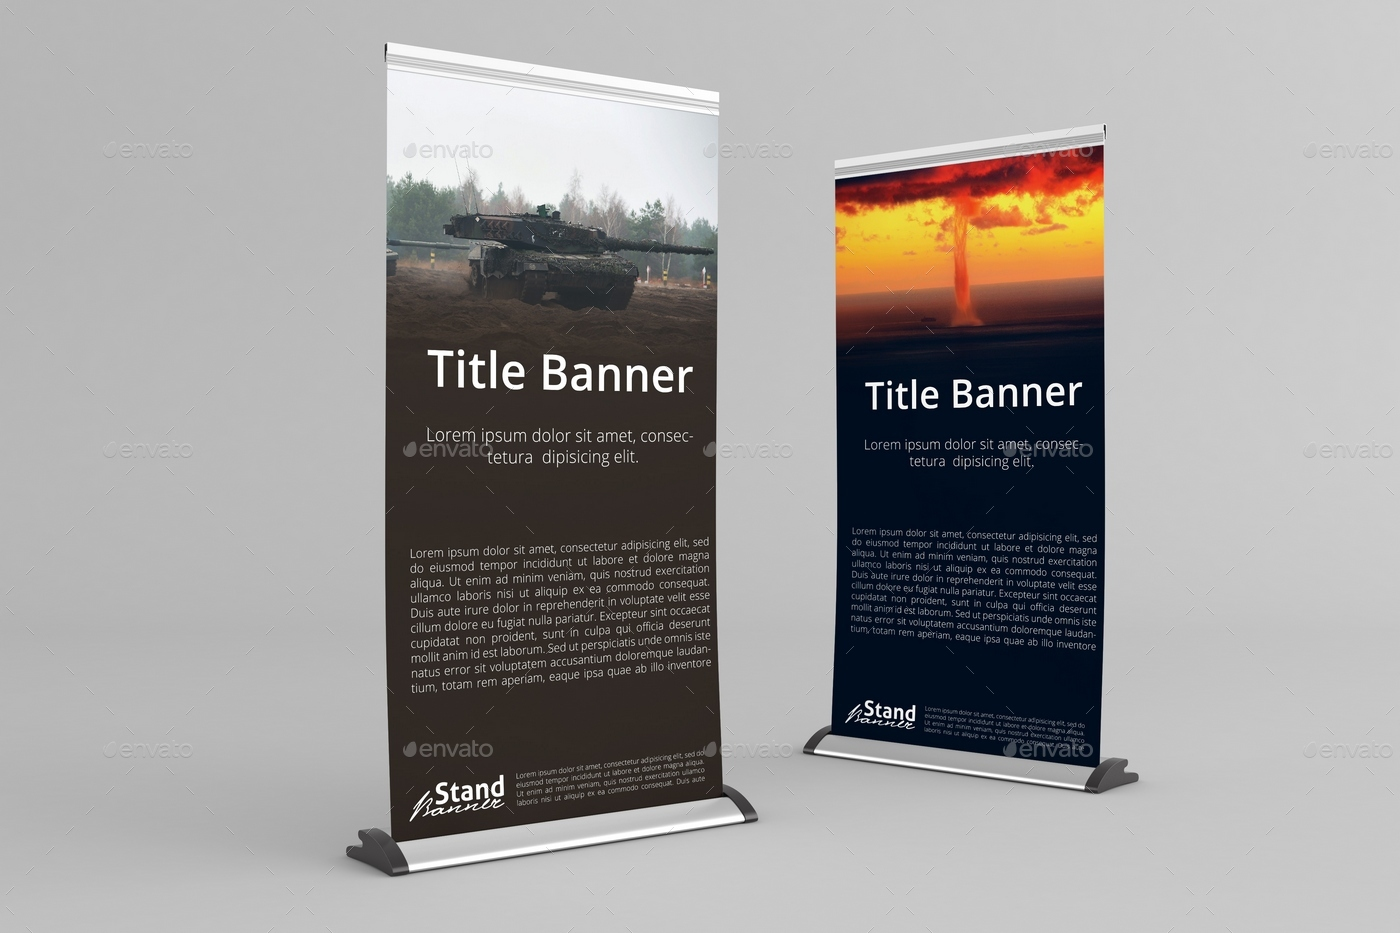 Retractable Roll Up Banner Stand Mock Up By Massdream